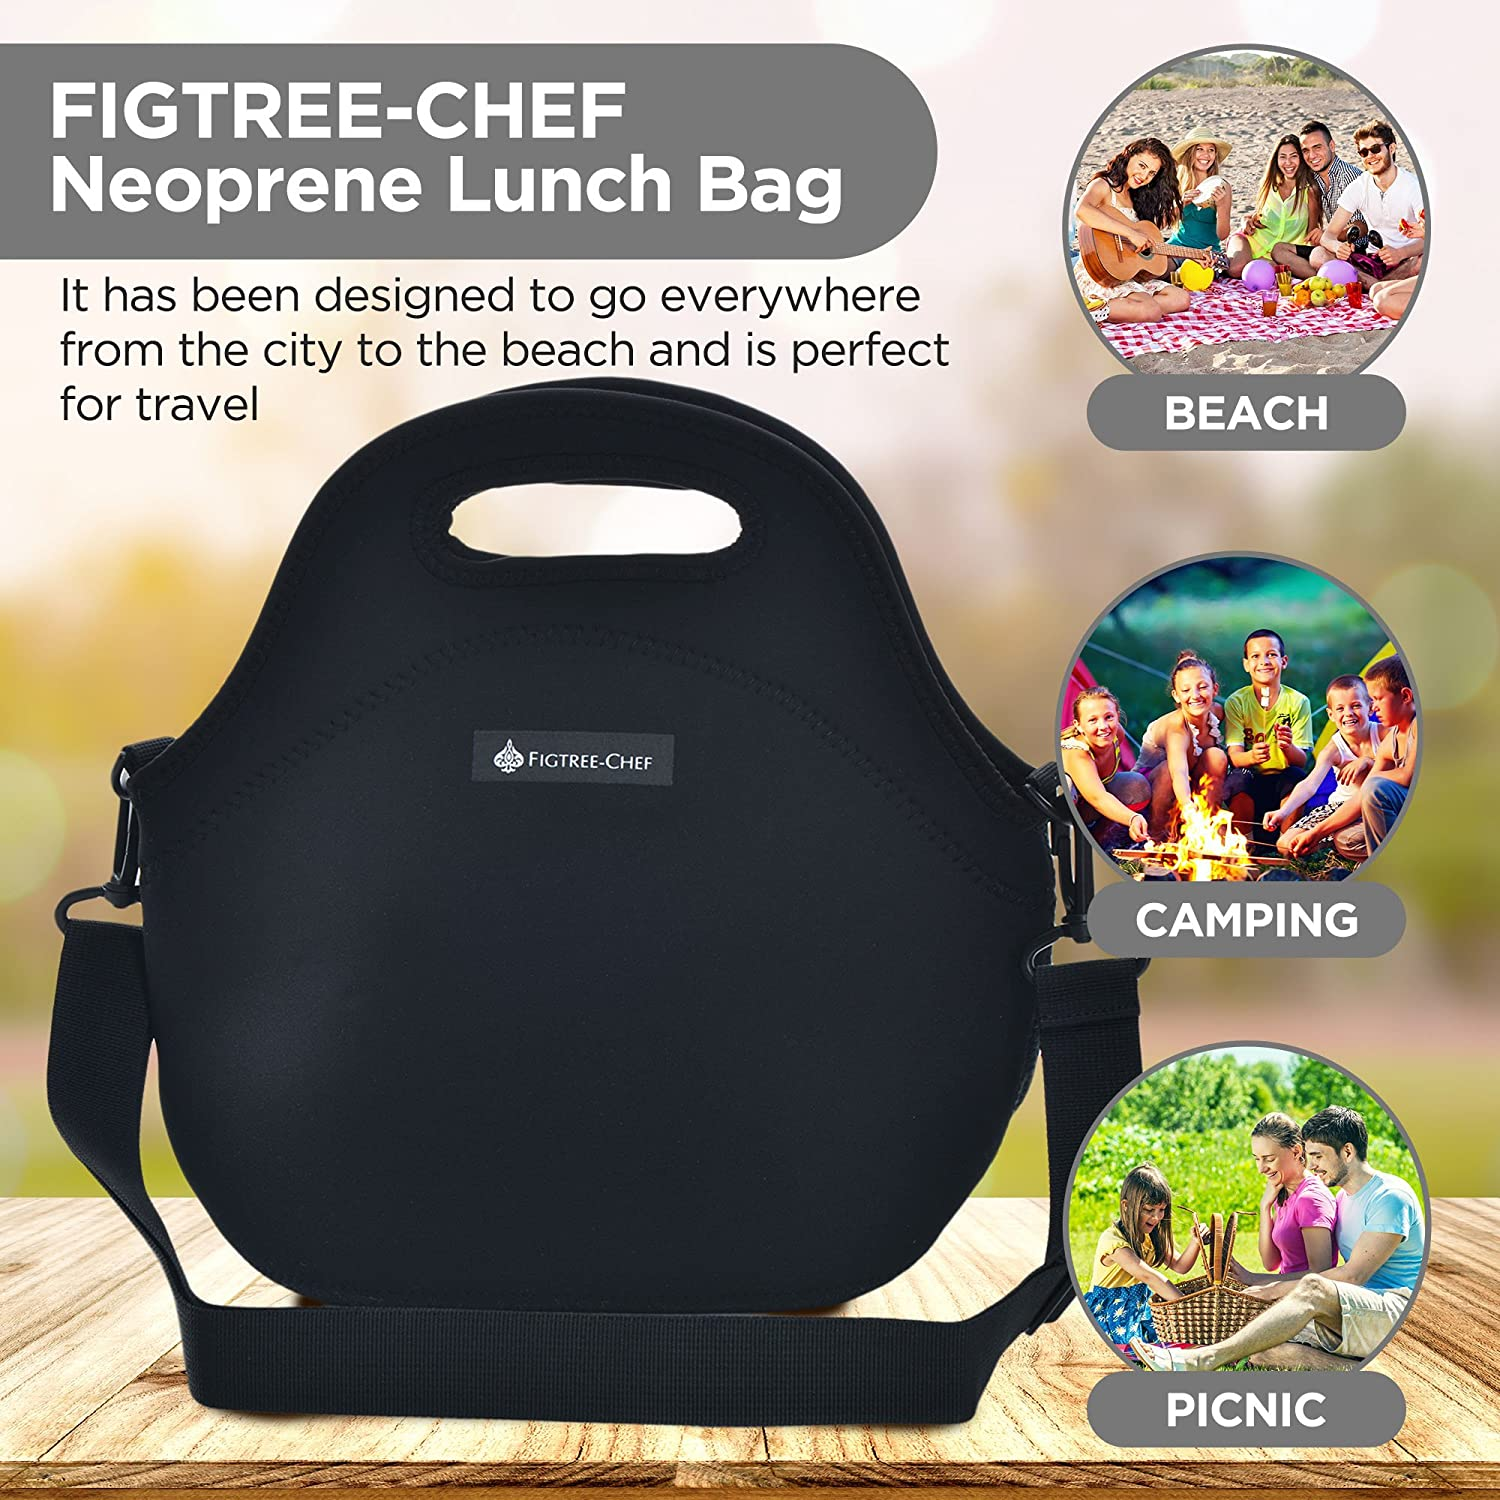 188d68c010ff FIGTREE-CHEF Neoprene Lunch Bag for Women - Extra Thick with Shoulder Strap  - Ideal for Work, School and Travel 11.5 x 12 x 6.5 ins (Black)